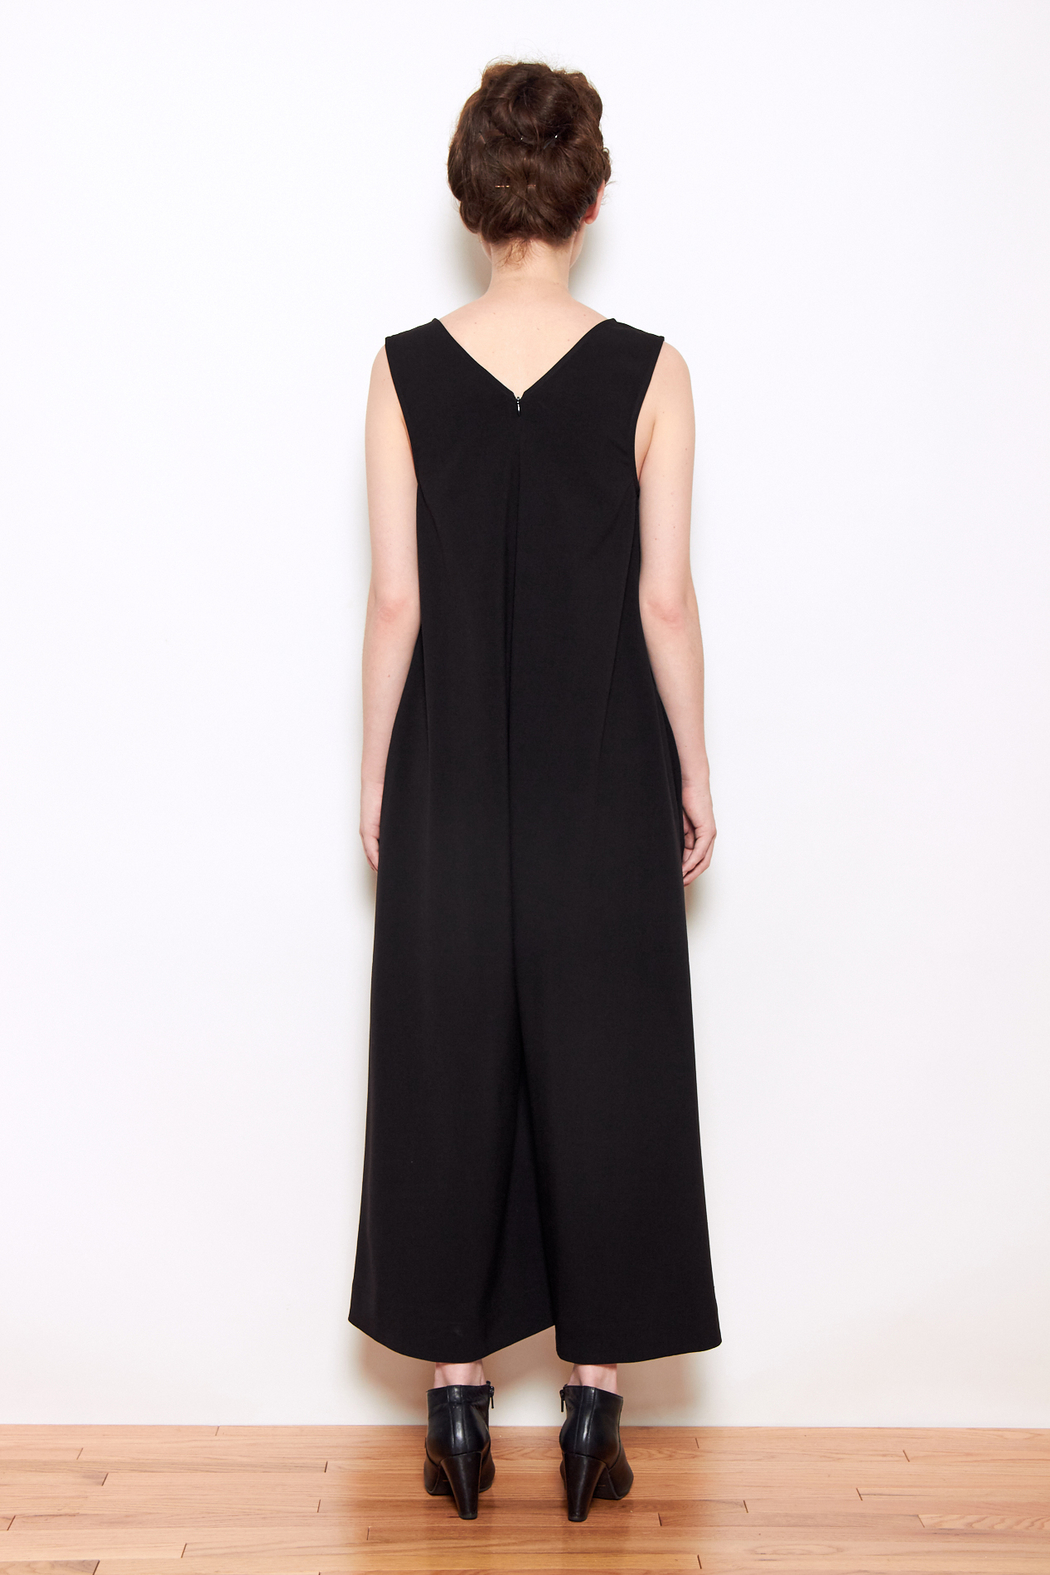 Grei V Neck Wide Leg Jumpsuit From West Village By Personnel Of New